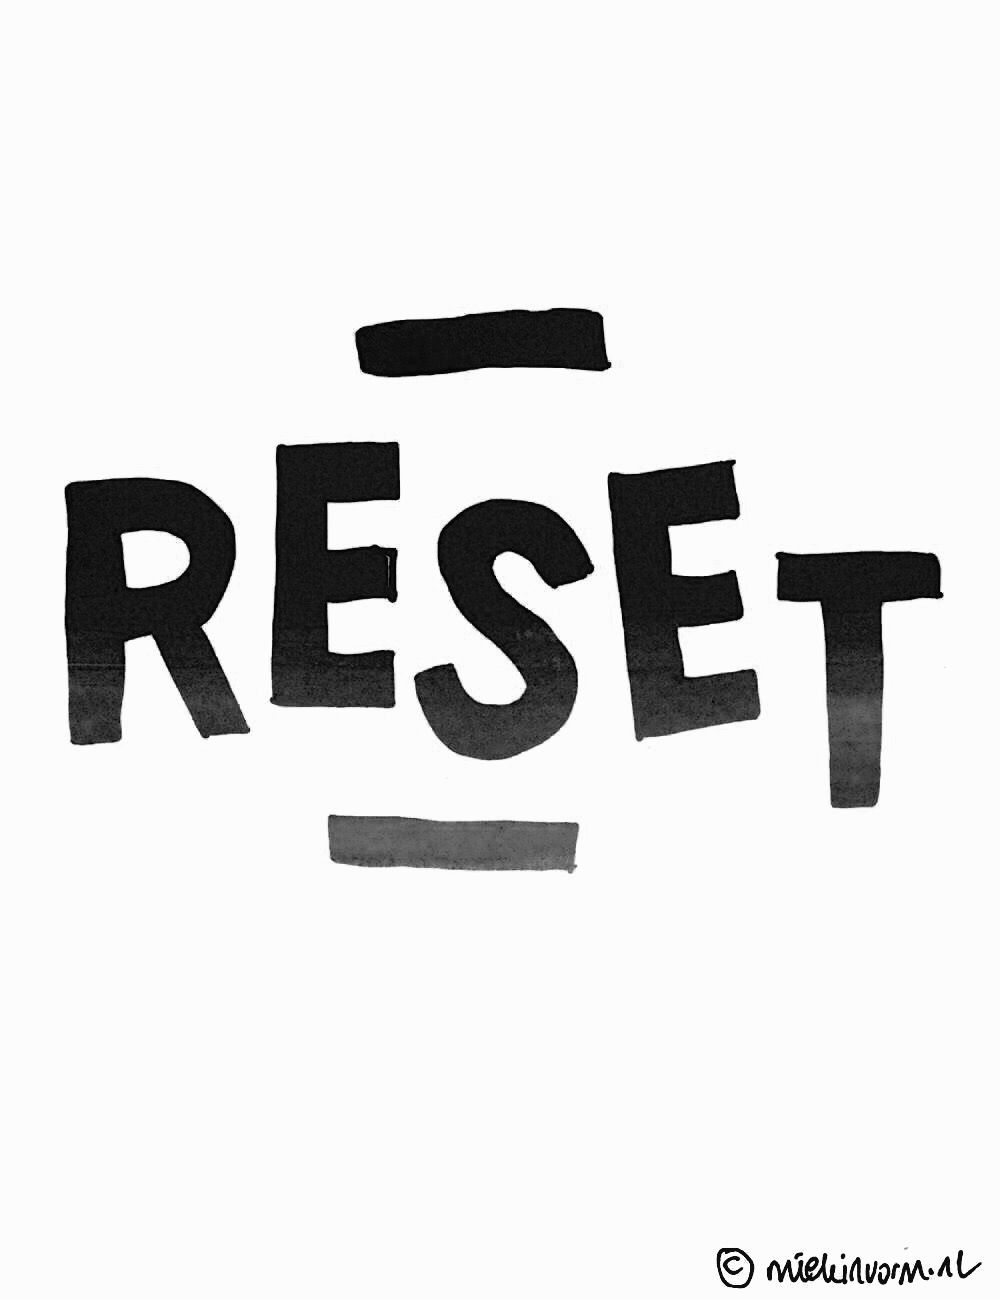 I Like To Think Of Every Day As A Chance To Hit The Reset Button